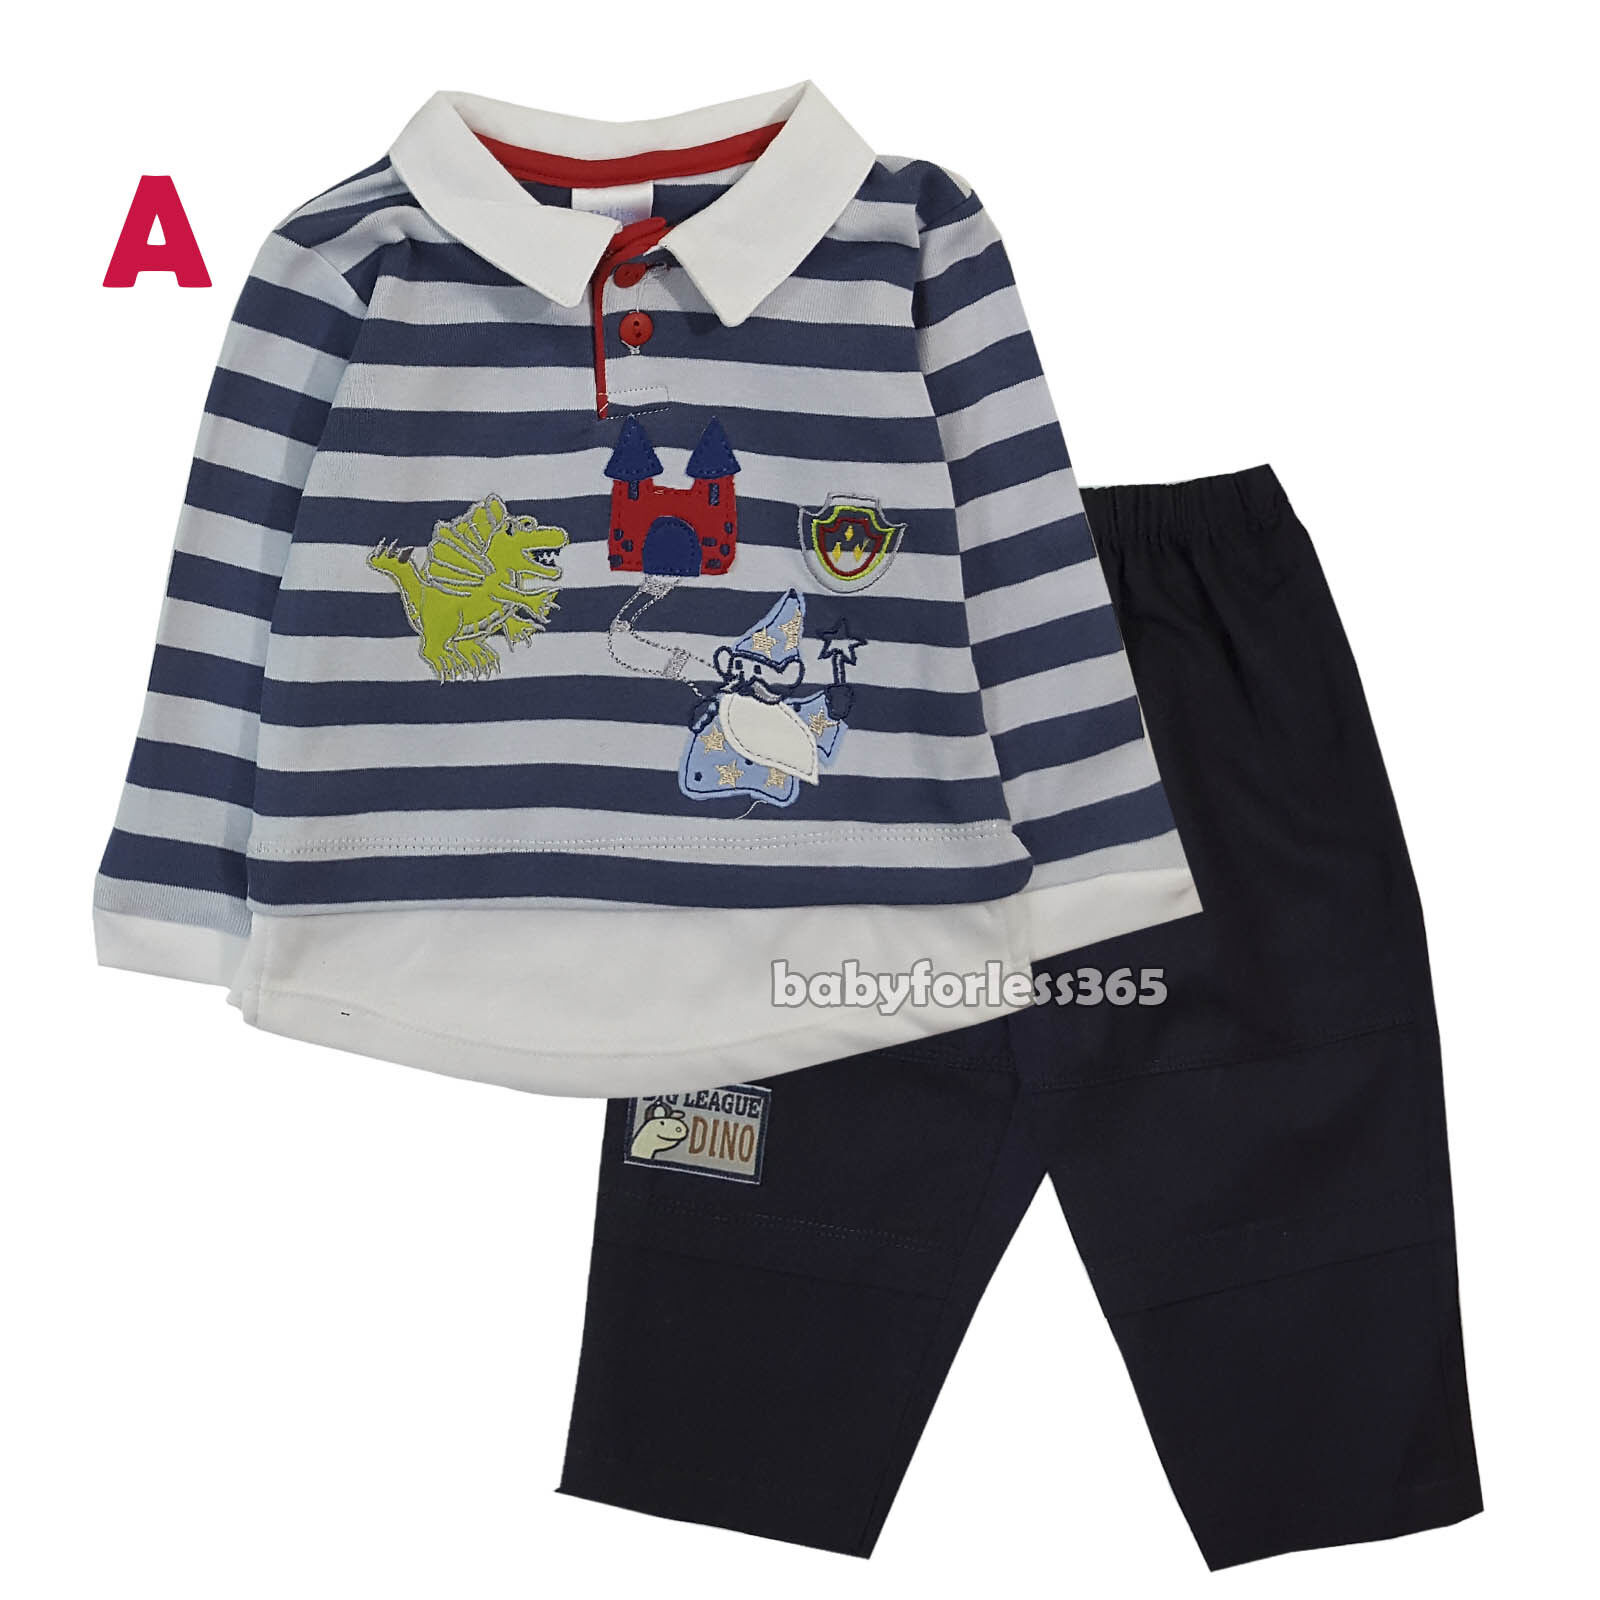 6589309b43f7 New Baby Boys 2 Piece sets long Sleeve Top and Pants Size 3 6 9 ...